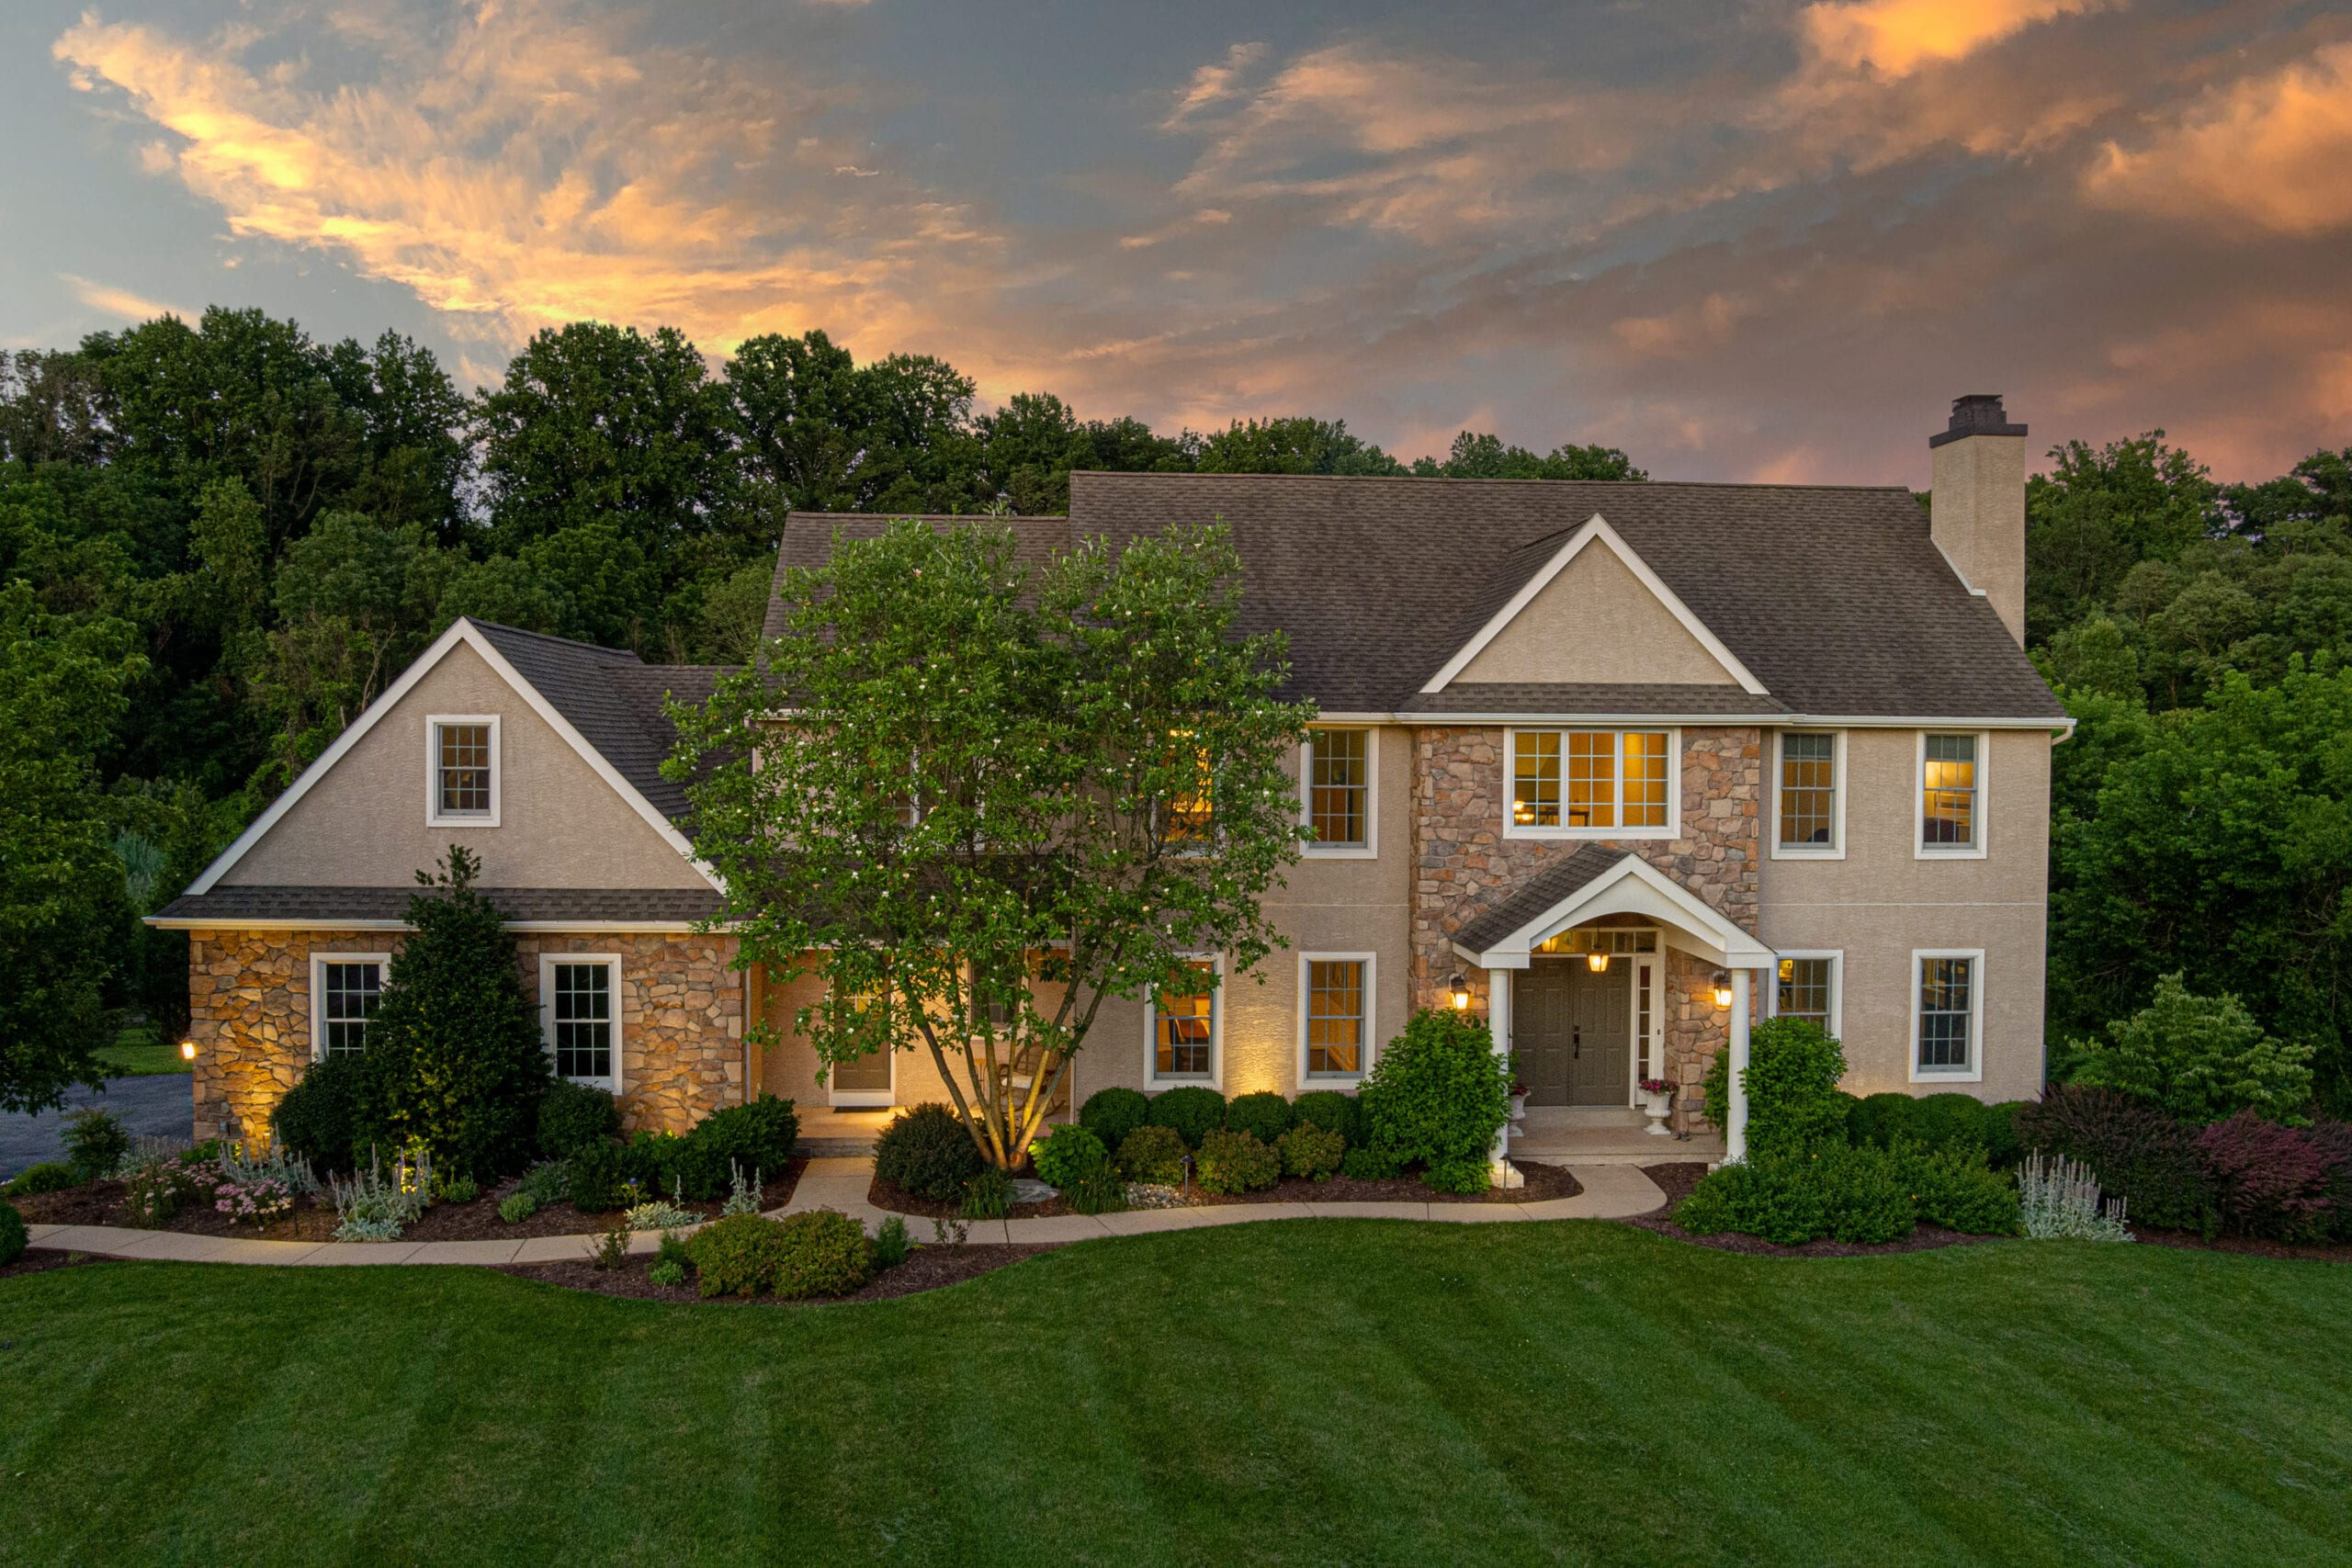 Twilight Photography of Chester County Real Estate